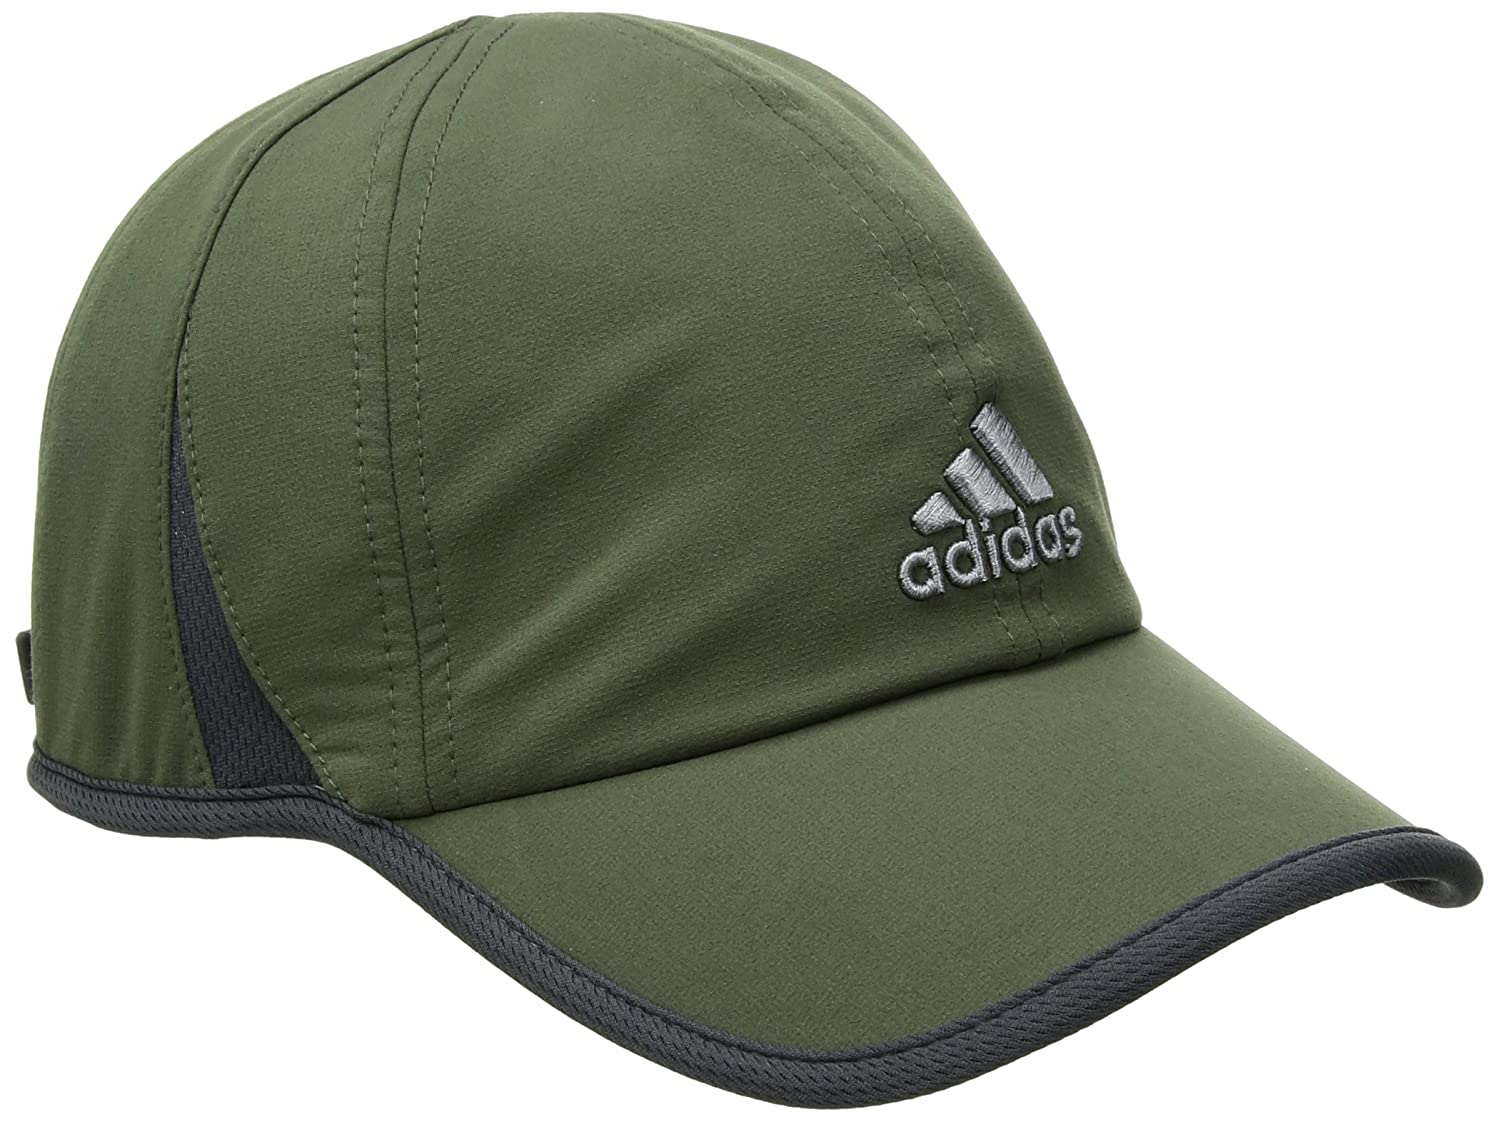 adidas hat black and white adidas tennis hat clearance. Black Bedroom Furniture Sets. Home Design Ideas